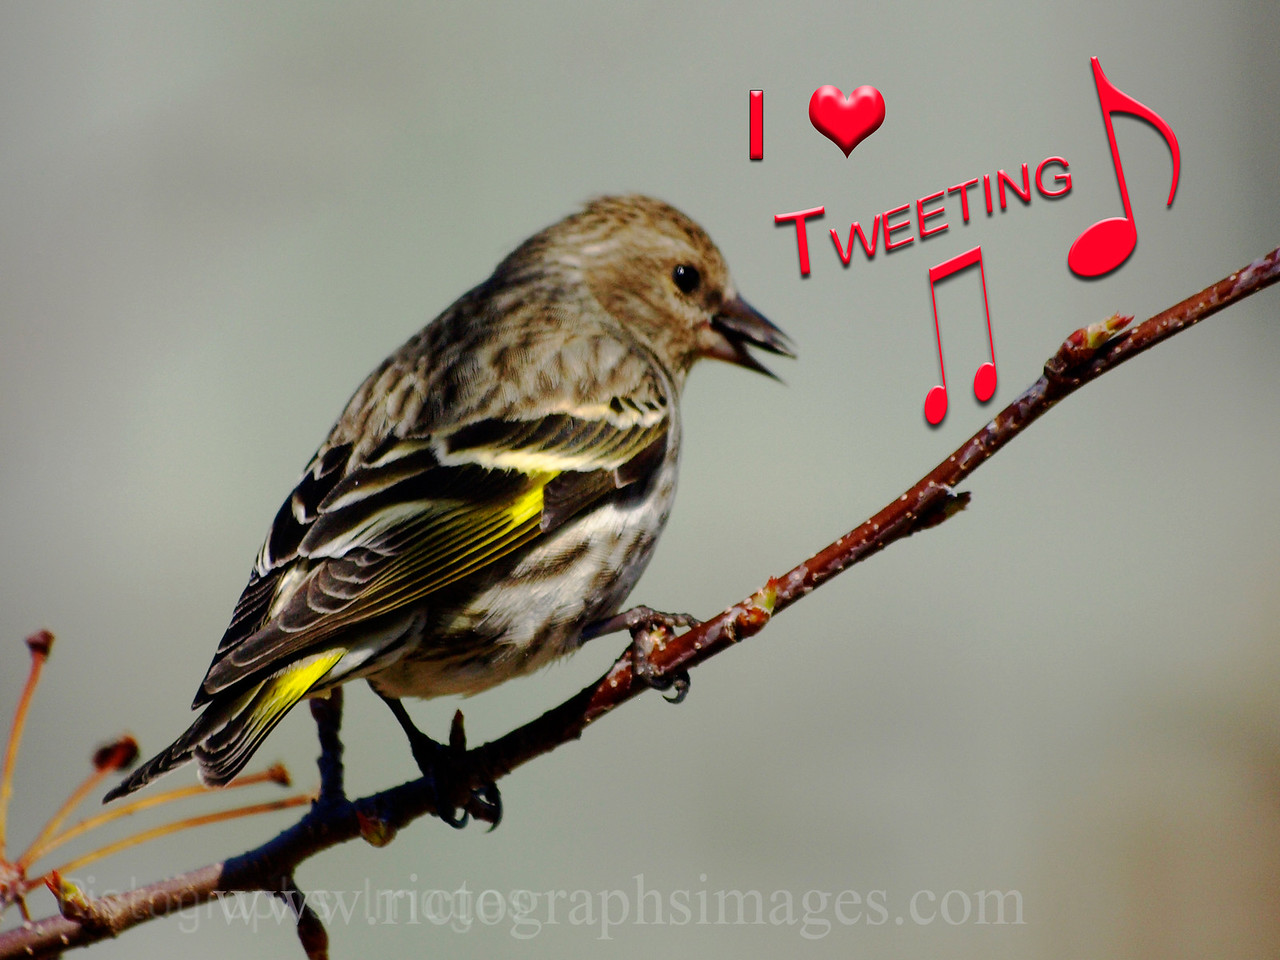 Tweety Bird Tweeting, Rictographs Images, I Heart Tweeting